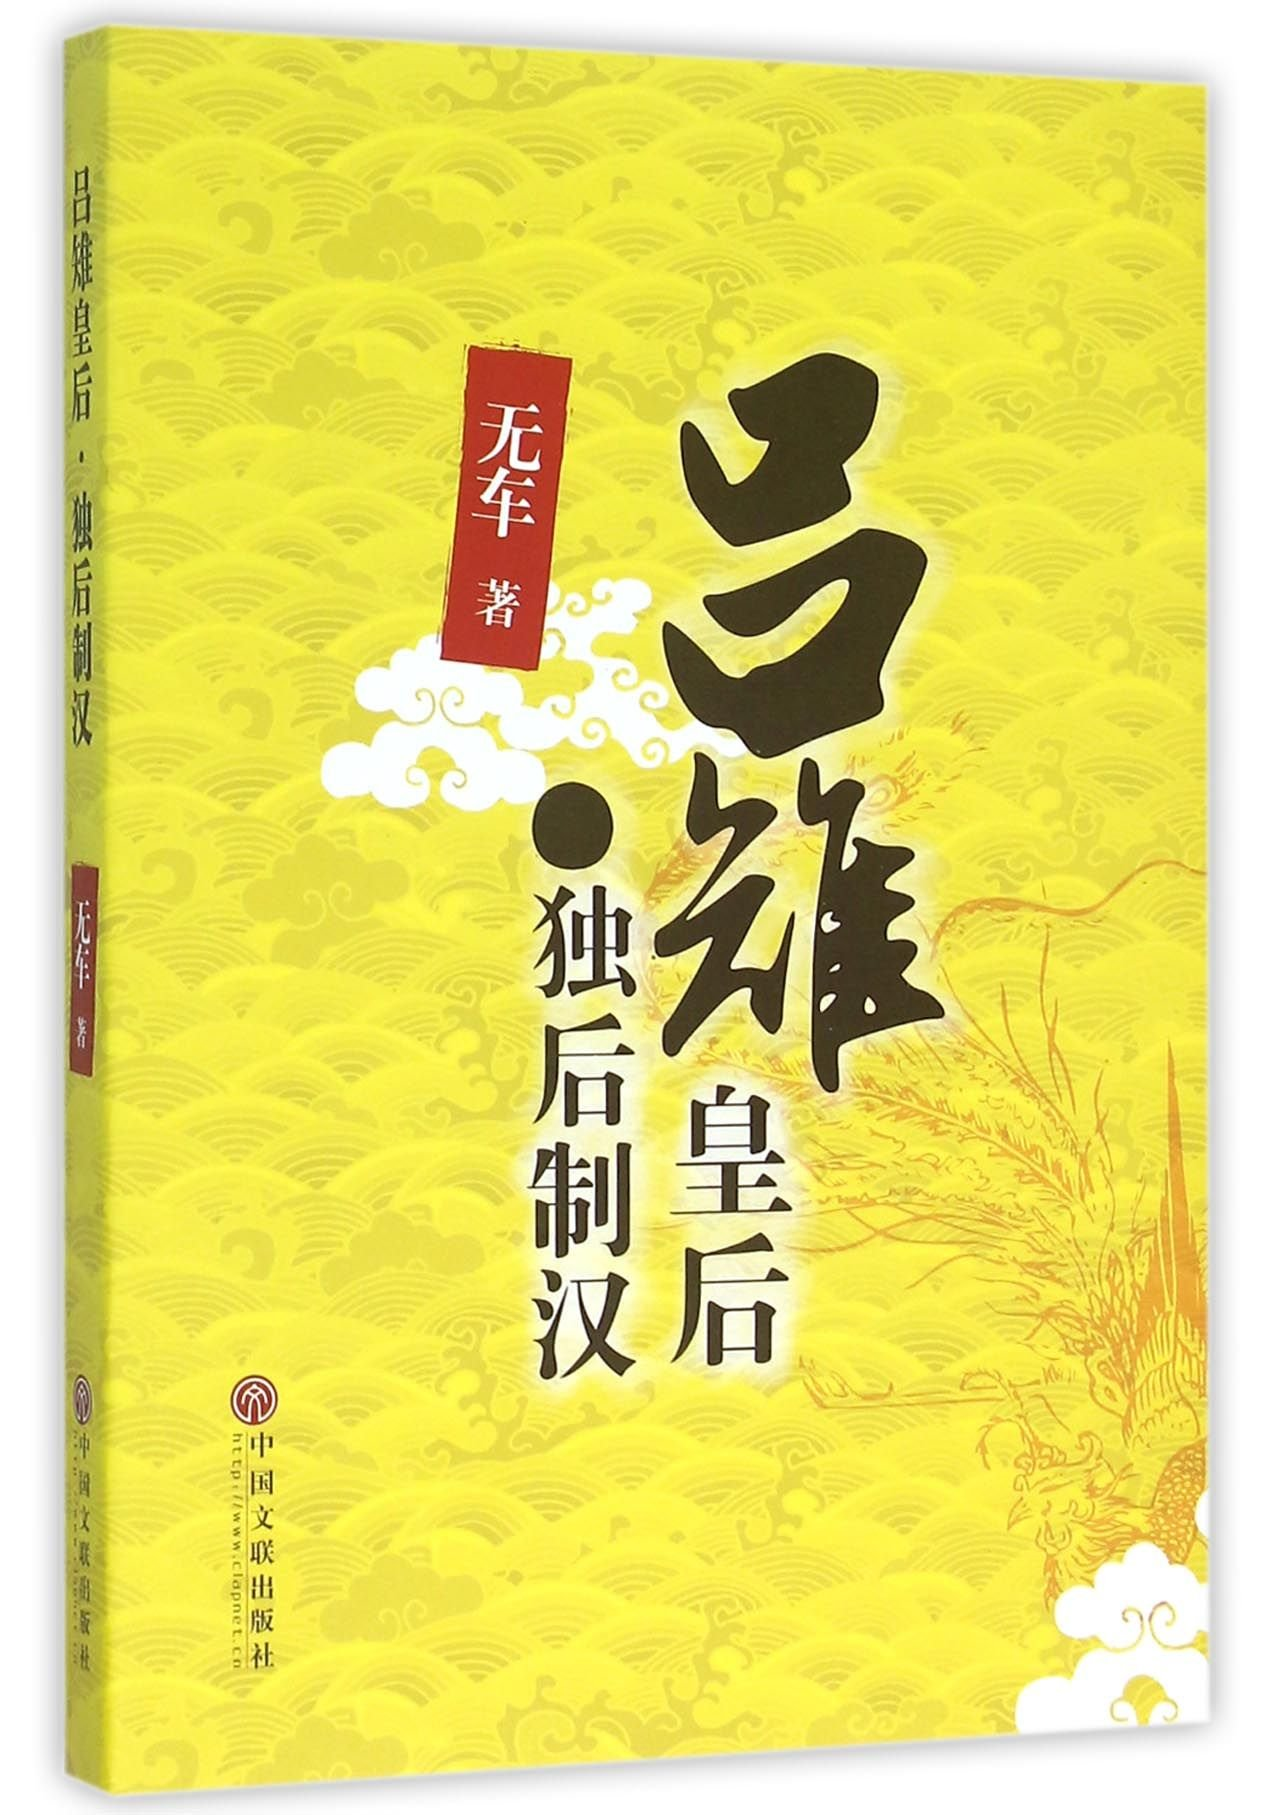 Download Queen Lv Zhi's Autocracy of Han Dynasty (Chinese Edition) PDF